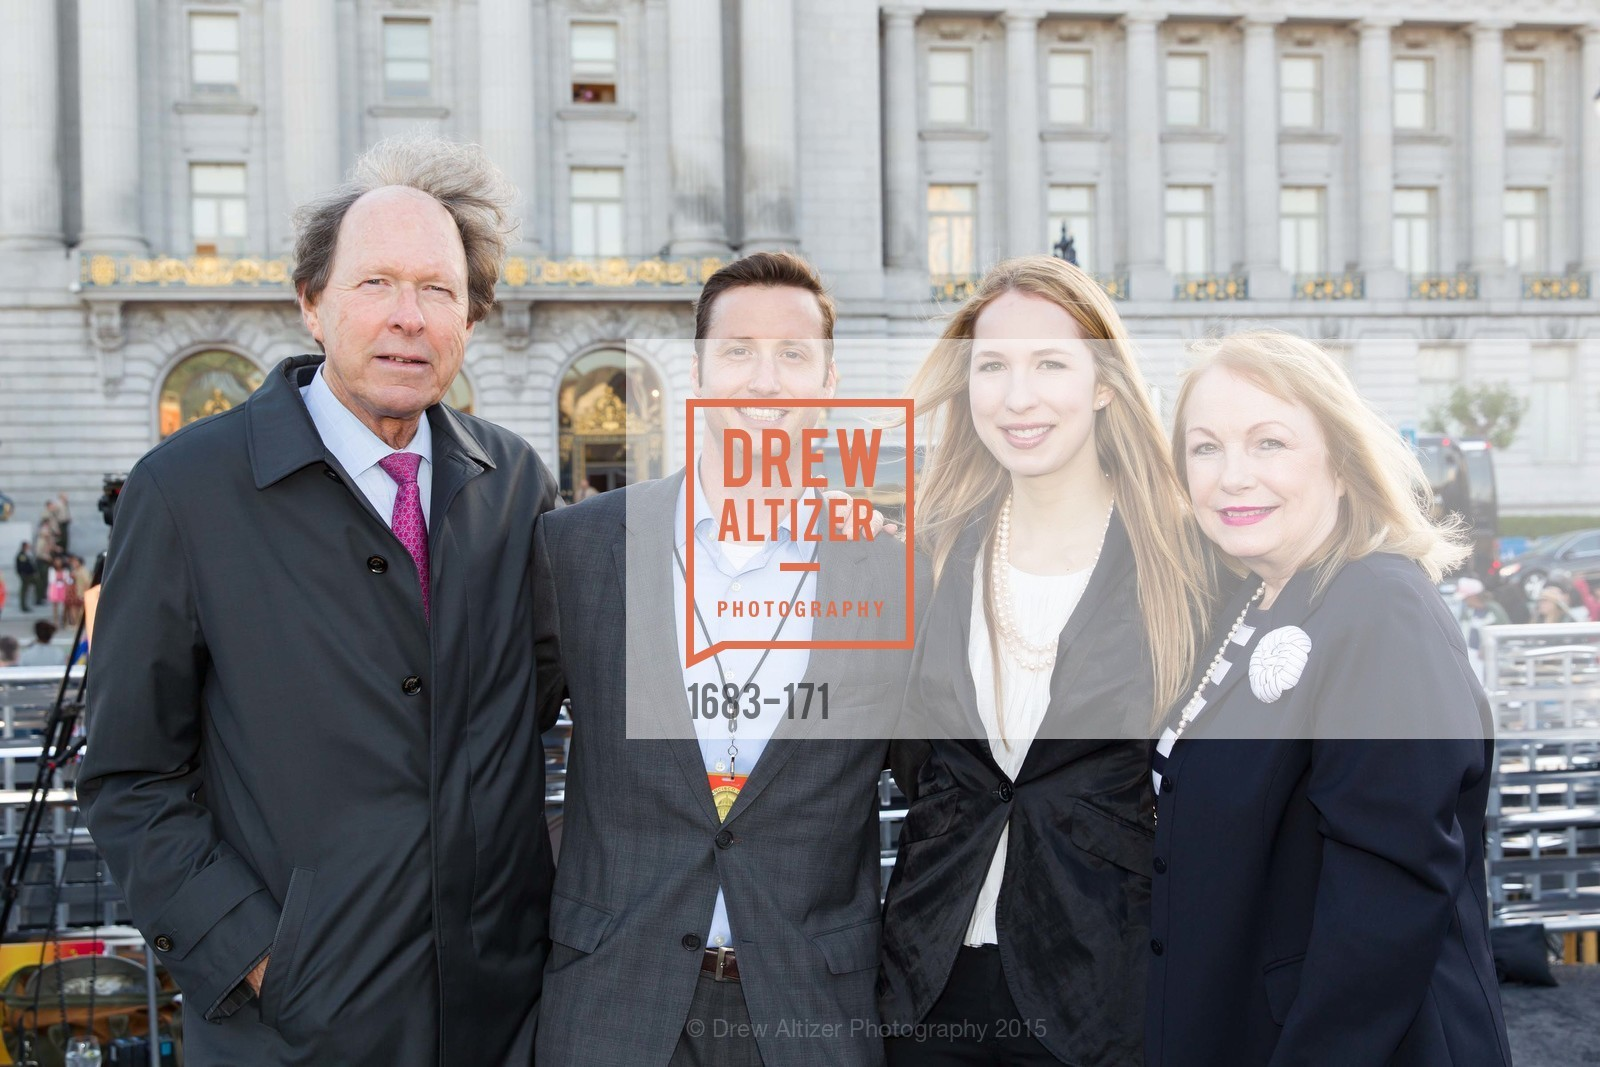 Rick Colsky, John Gavin, Kristin Gavin, Susan Colsky, San Francisco City Hall Centennial Celebration, Civic Center Plaza, June 18th, 2015